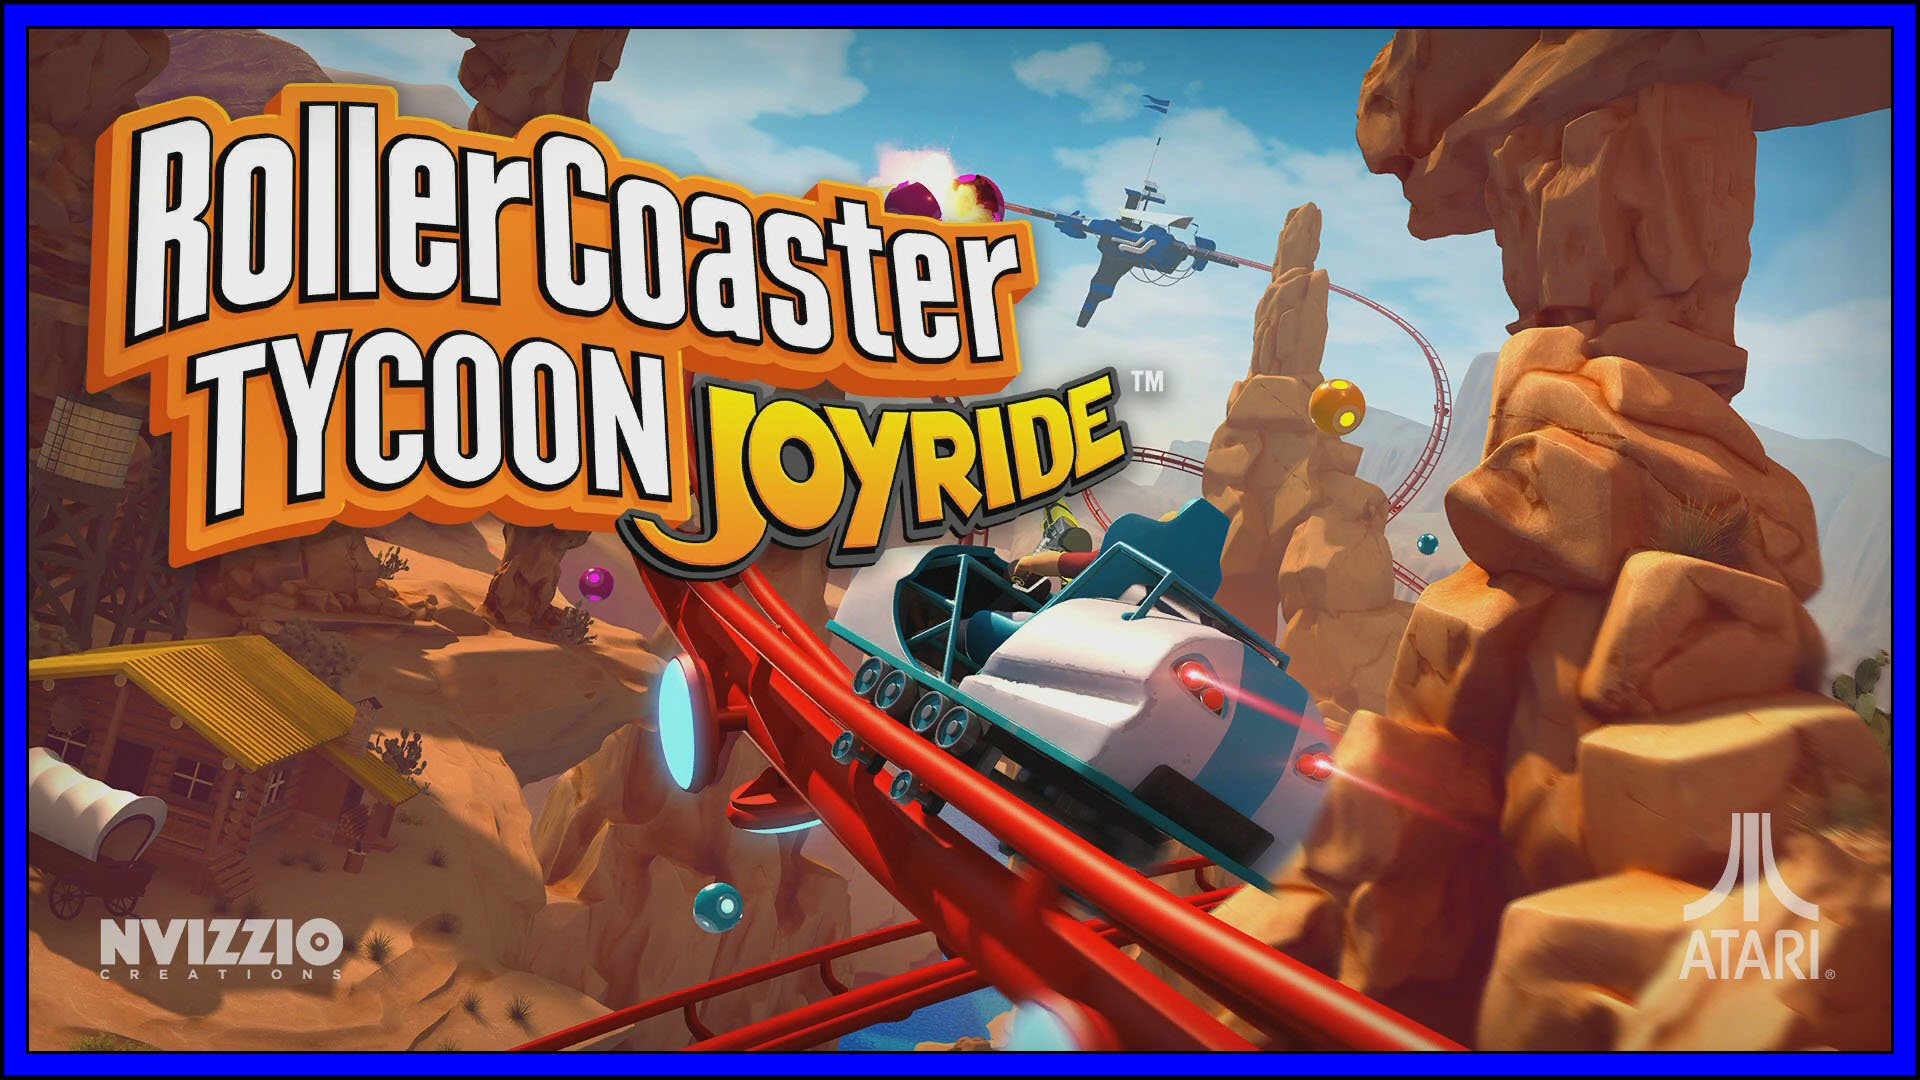 Rollercoaster Tycoon Joyride (PS4, PSVR) Review